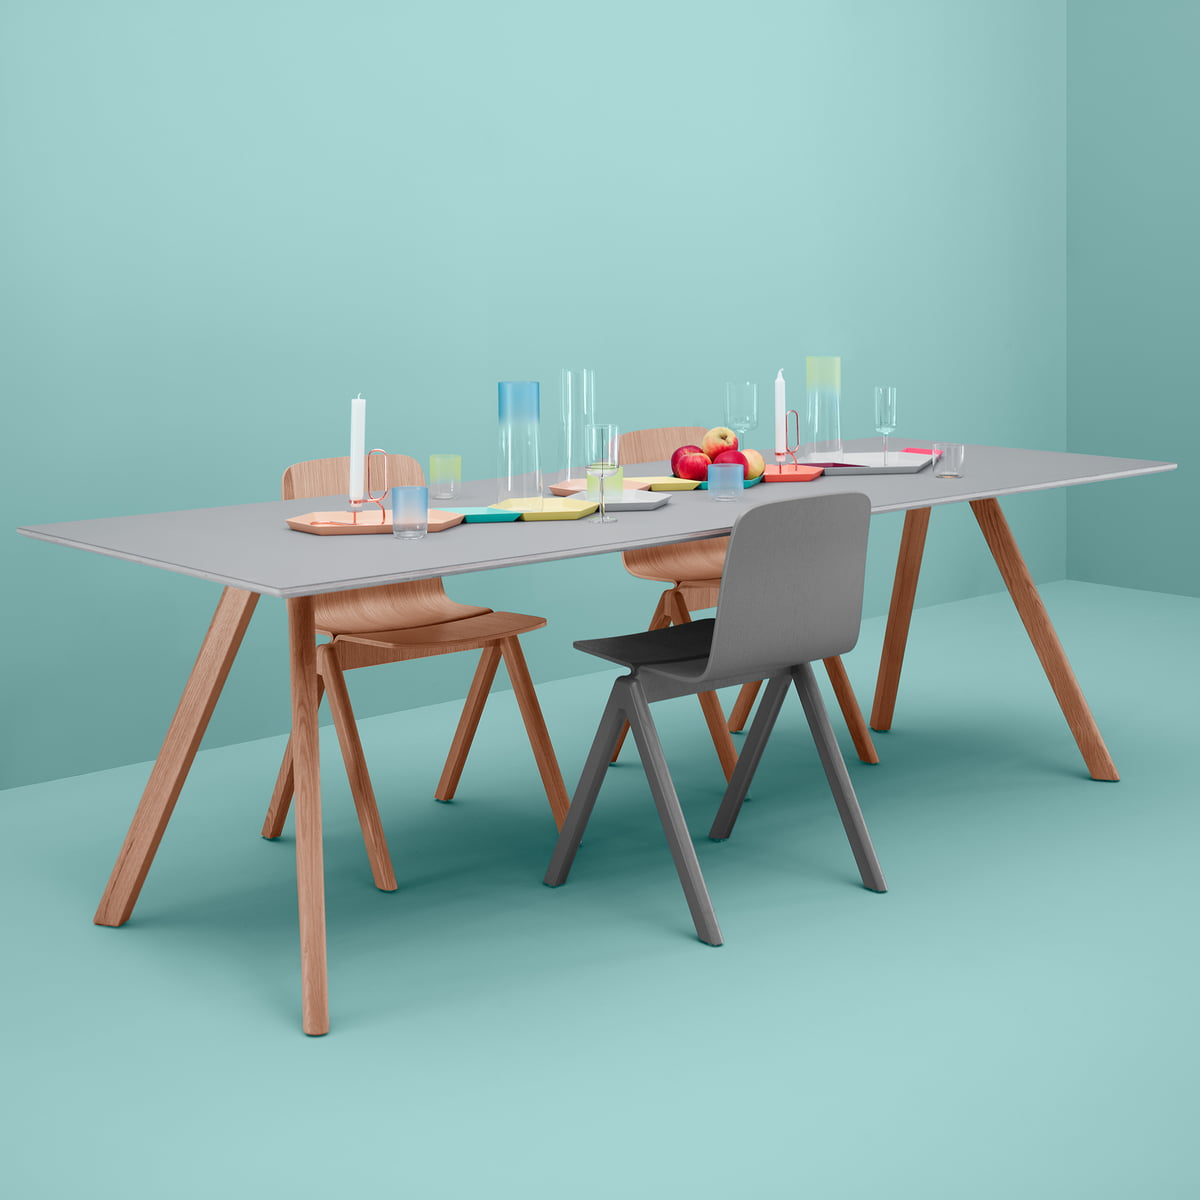 The Copenhague CPH30 Dining Table by Hay